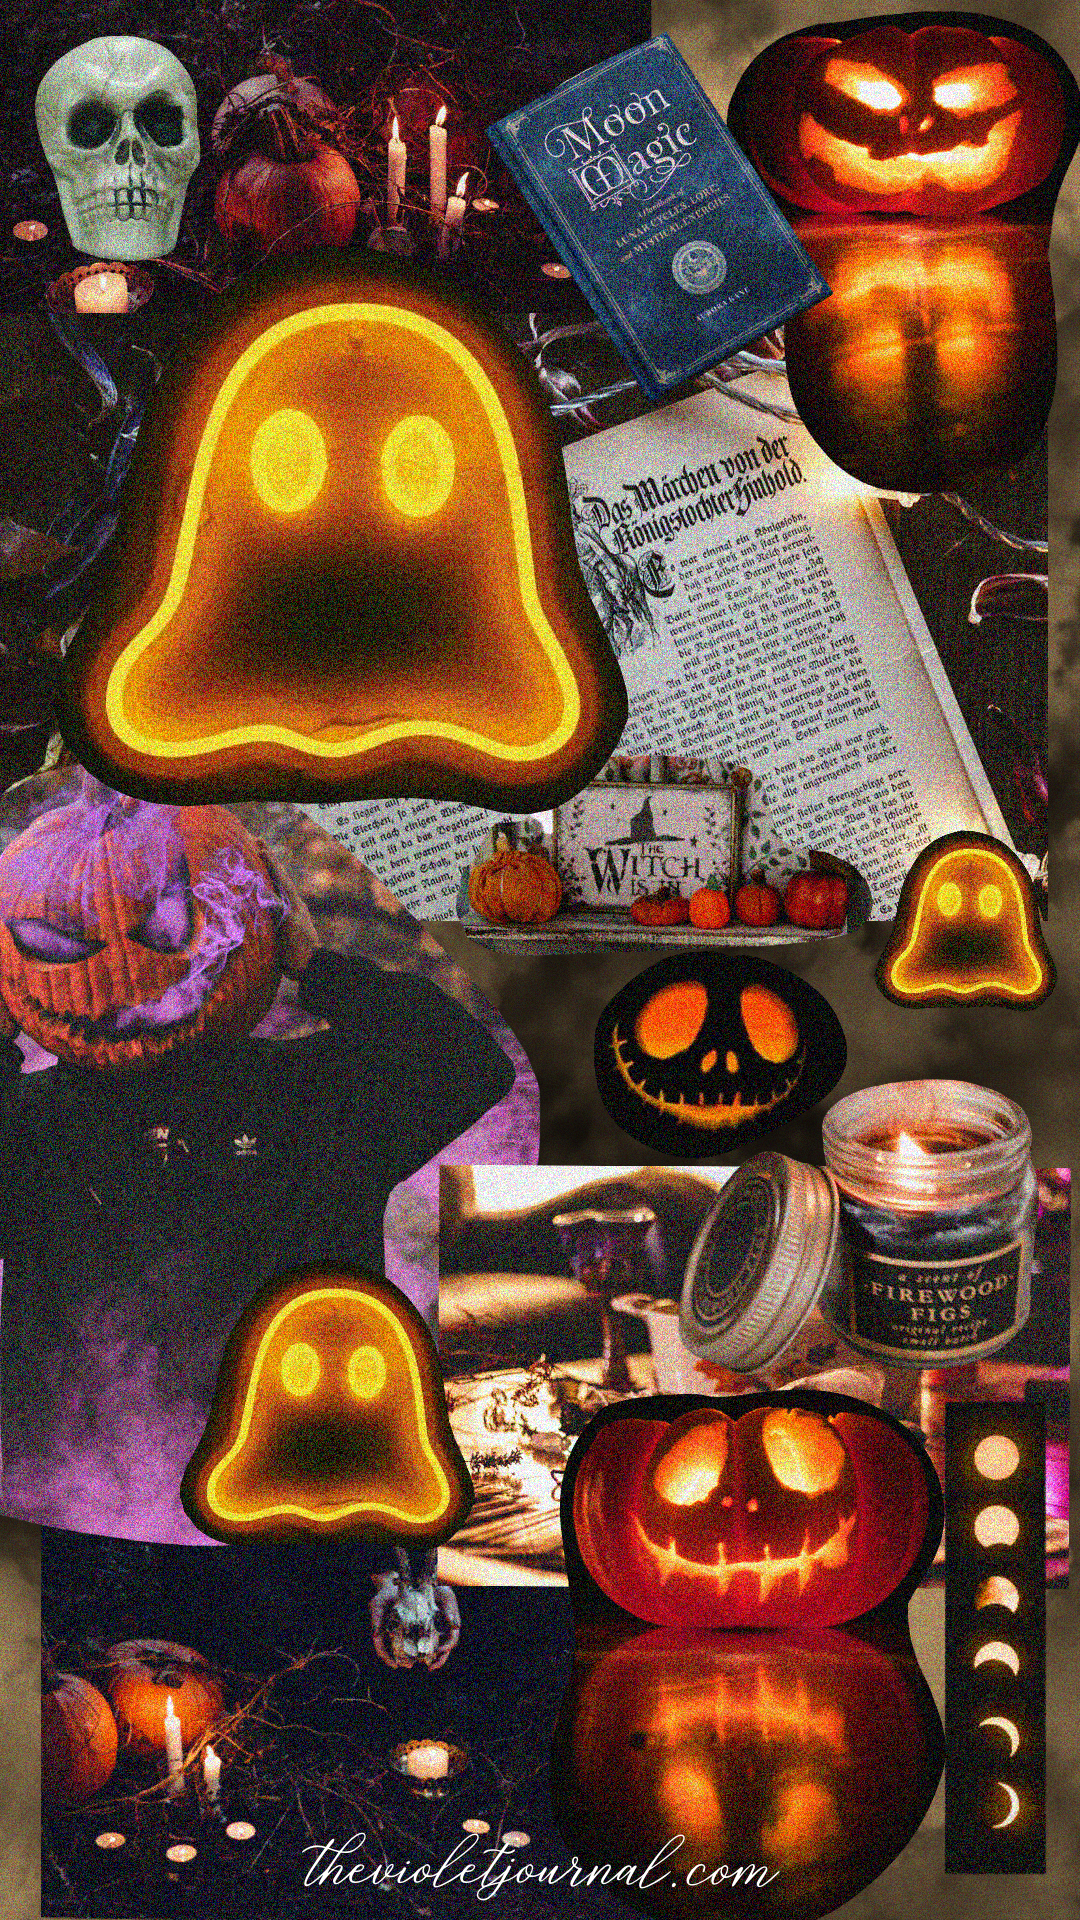 spooky collage iphone wallpaper for halloween